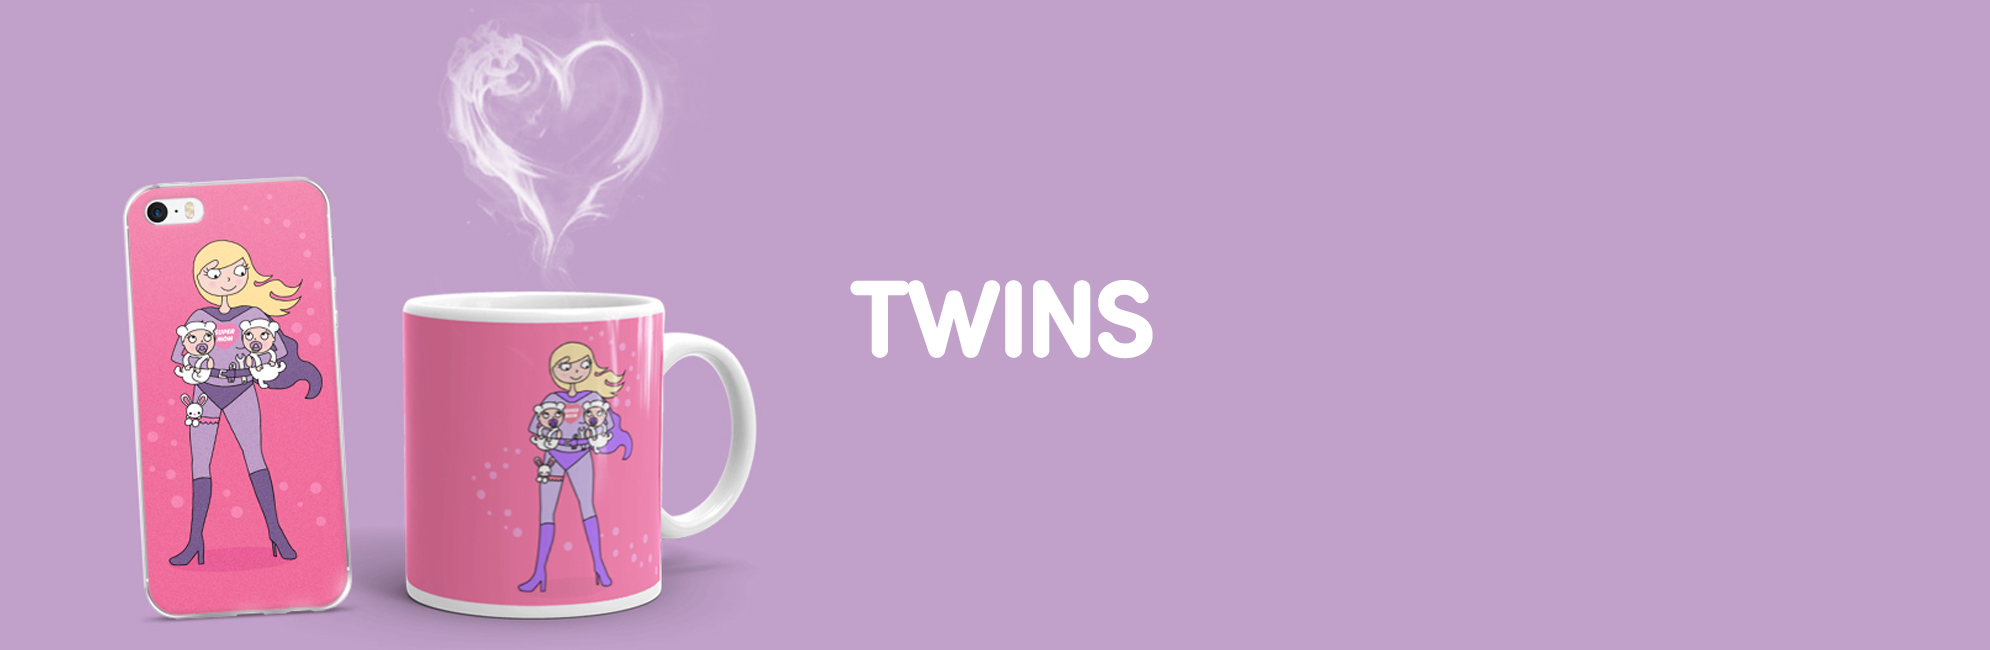 banner_twins